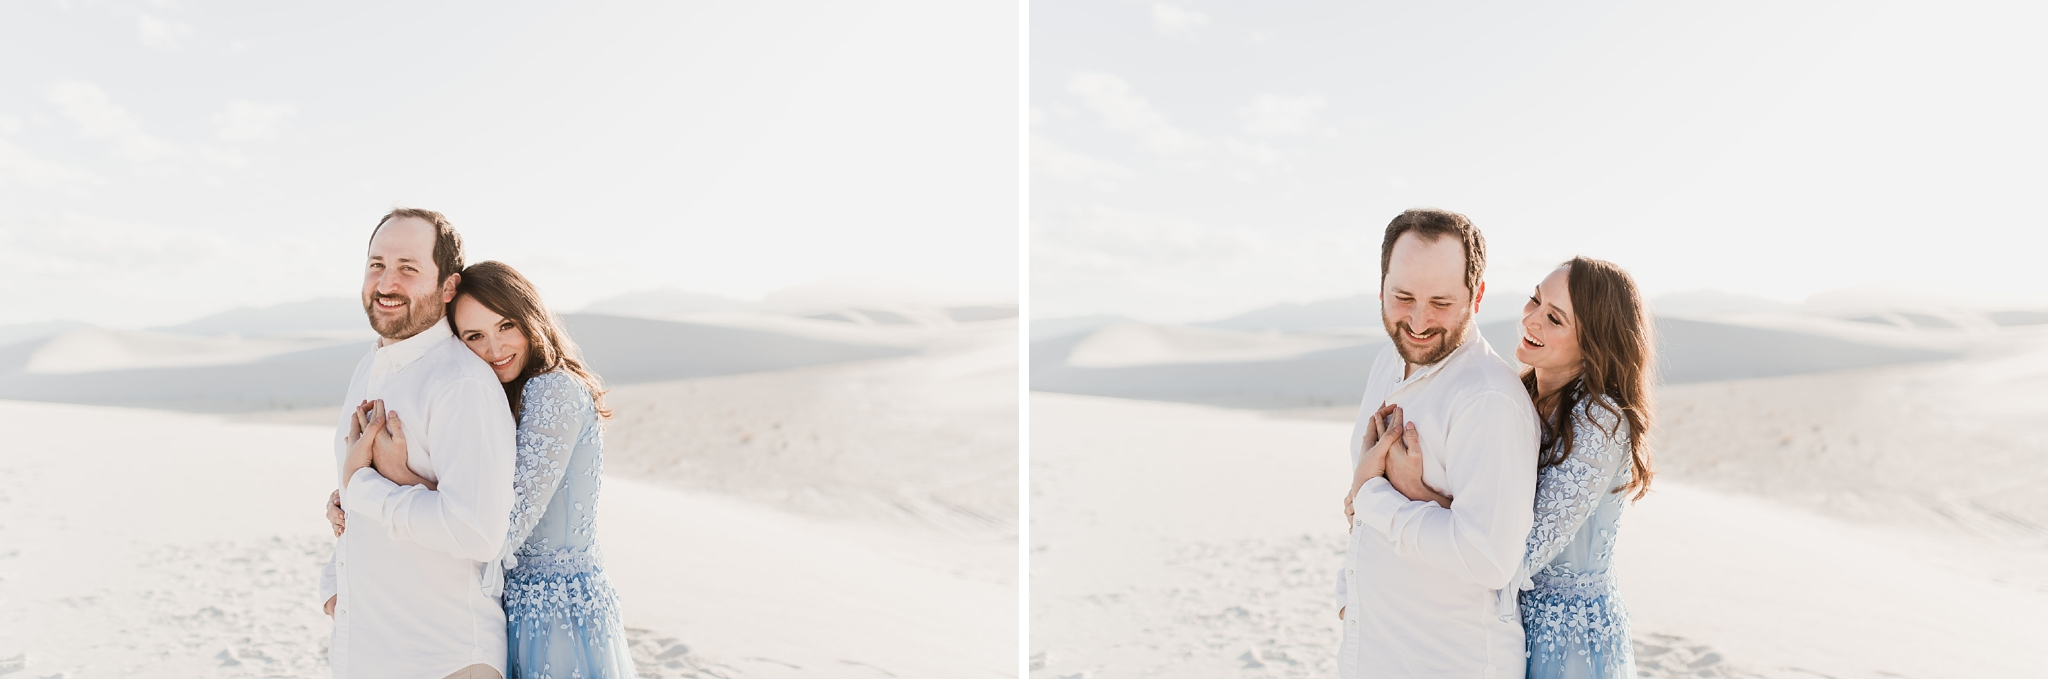 Alicia+lucia+photography+-+albuquerque+wedding+photographer+-+santa+fe+wedding+photography+-+new+mexico+wedding+photographer+-+new+mexico+wedding+-+new+mexico+engagement+-+white+sands+engagement+-+white+sands+national+monument_0023.jpg